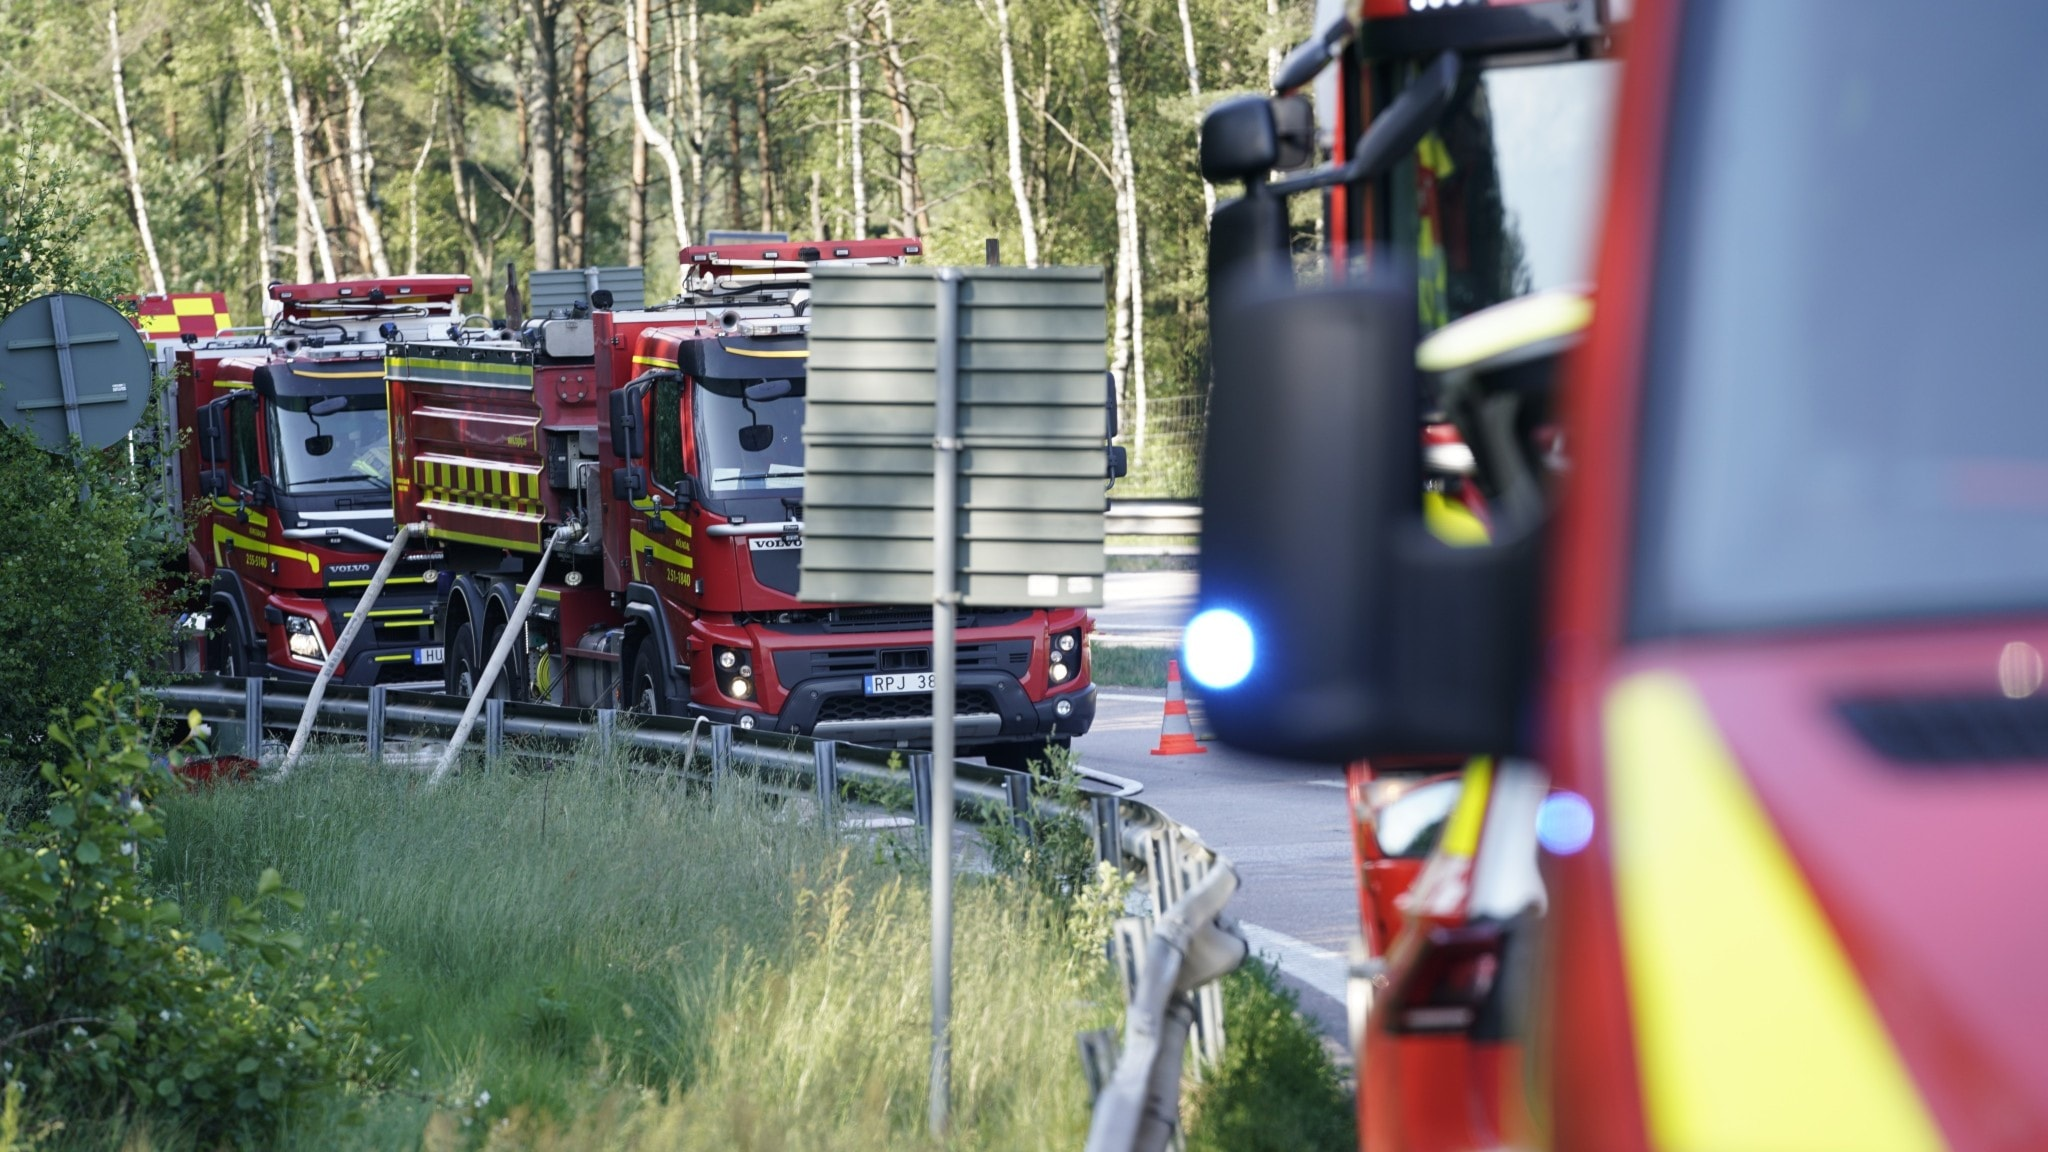 A number of fire engines in a forest